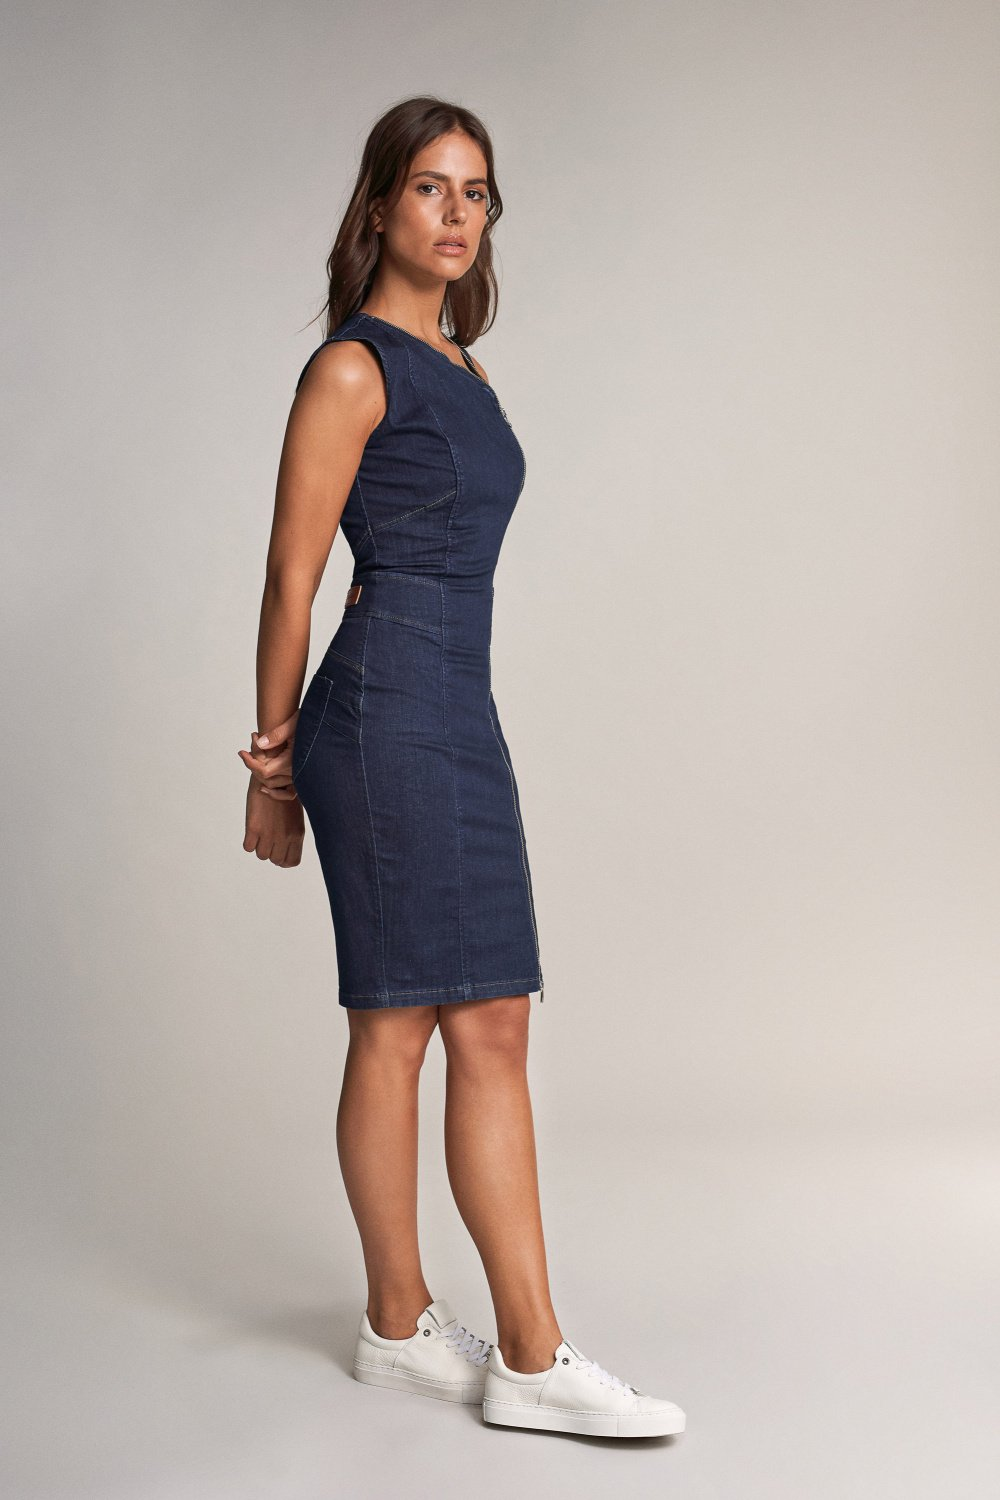 Kleid, Secret, in dunklem Denim - Salsa